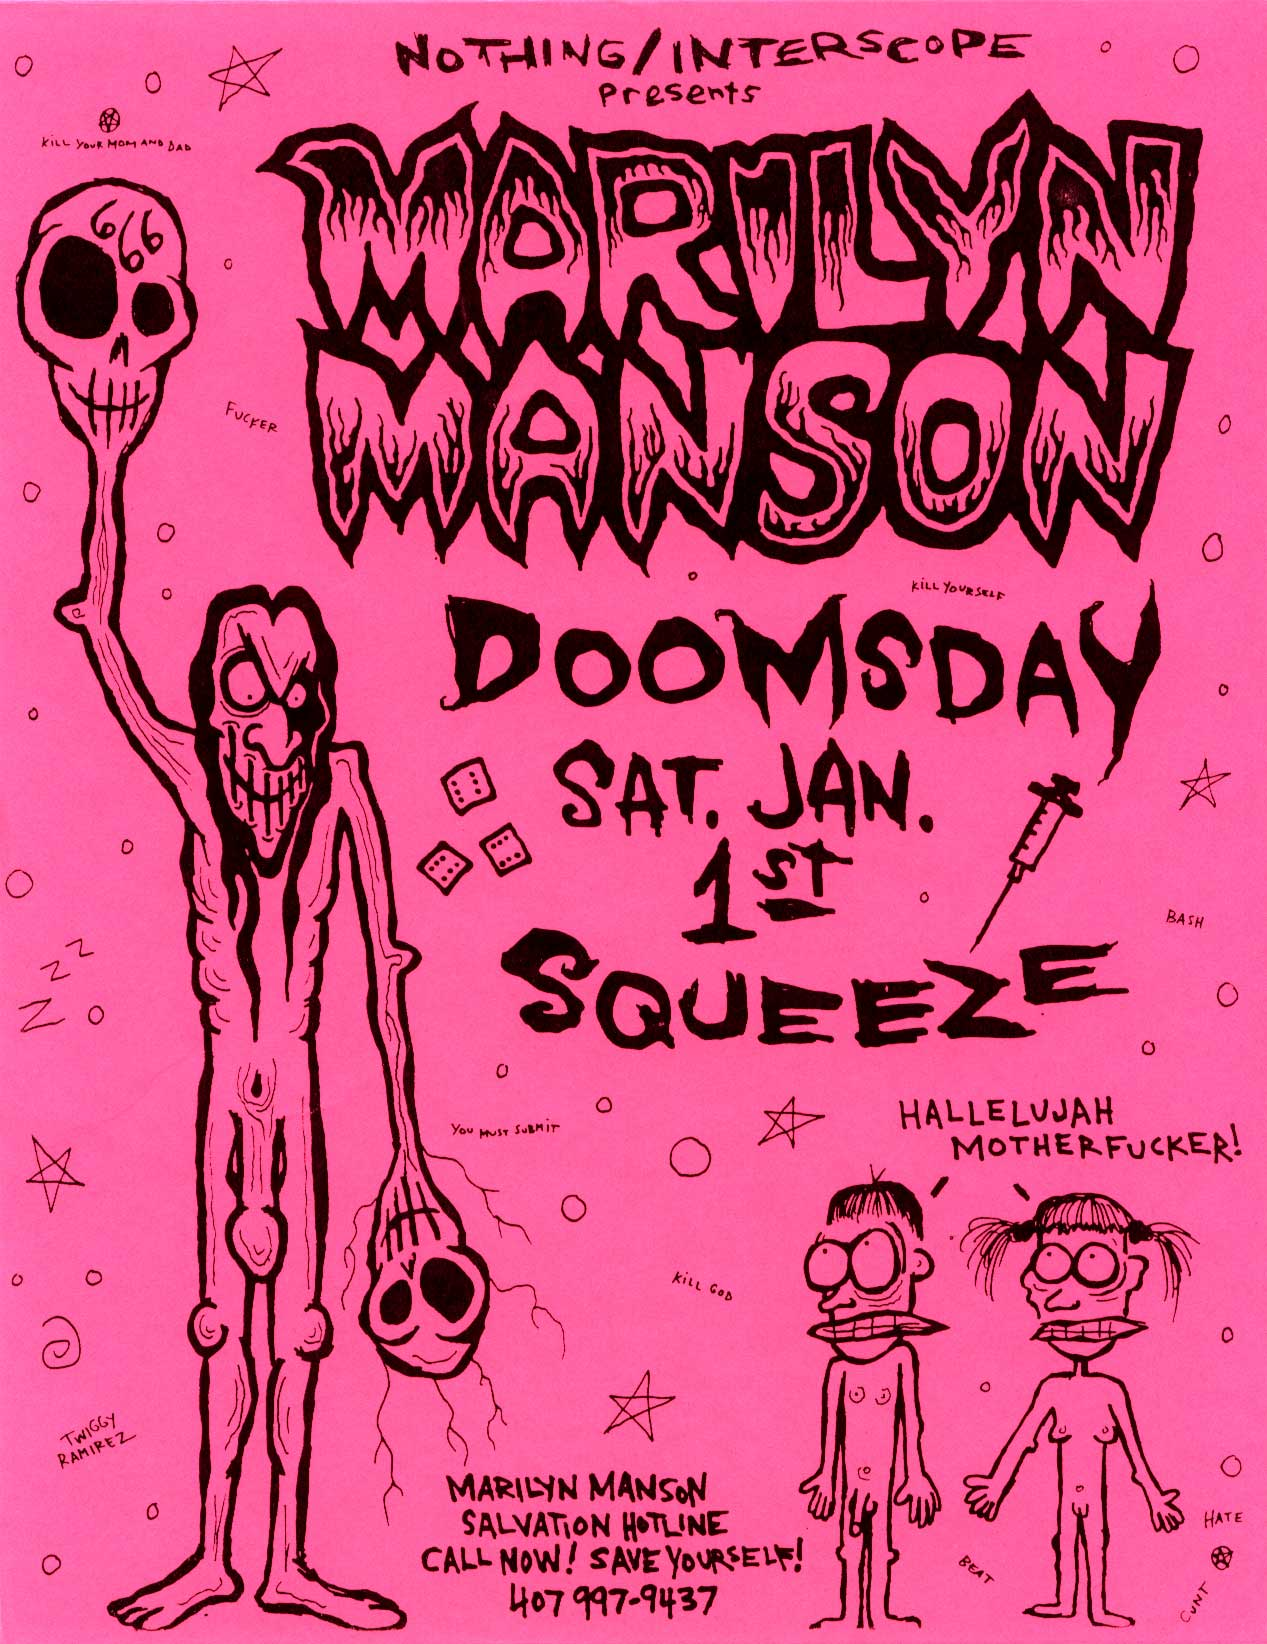 January 1, 1994 performance at Squeeze in Fort Lauderdale, Florida, USA.